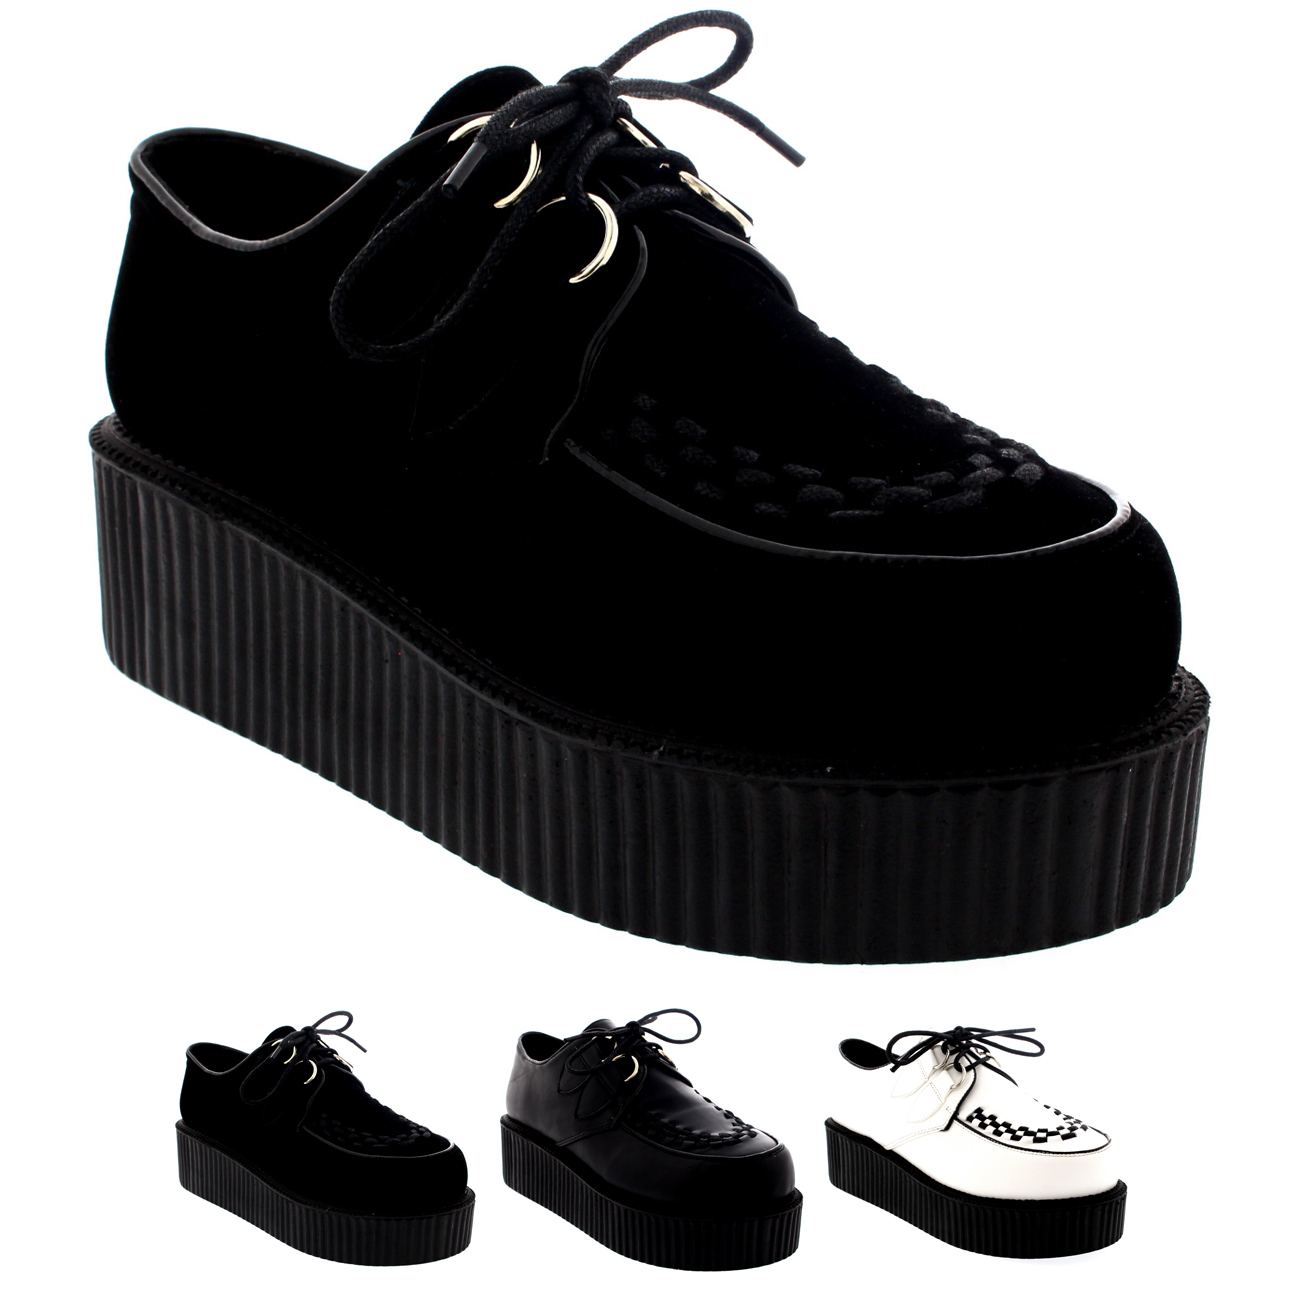 Womens Double Platform Punk Goth Flatform Brothel Creepers Retro Shoes US 5-11